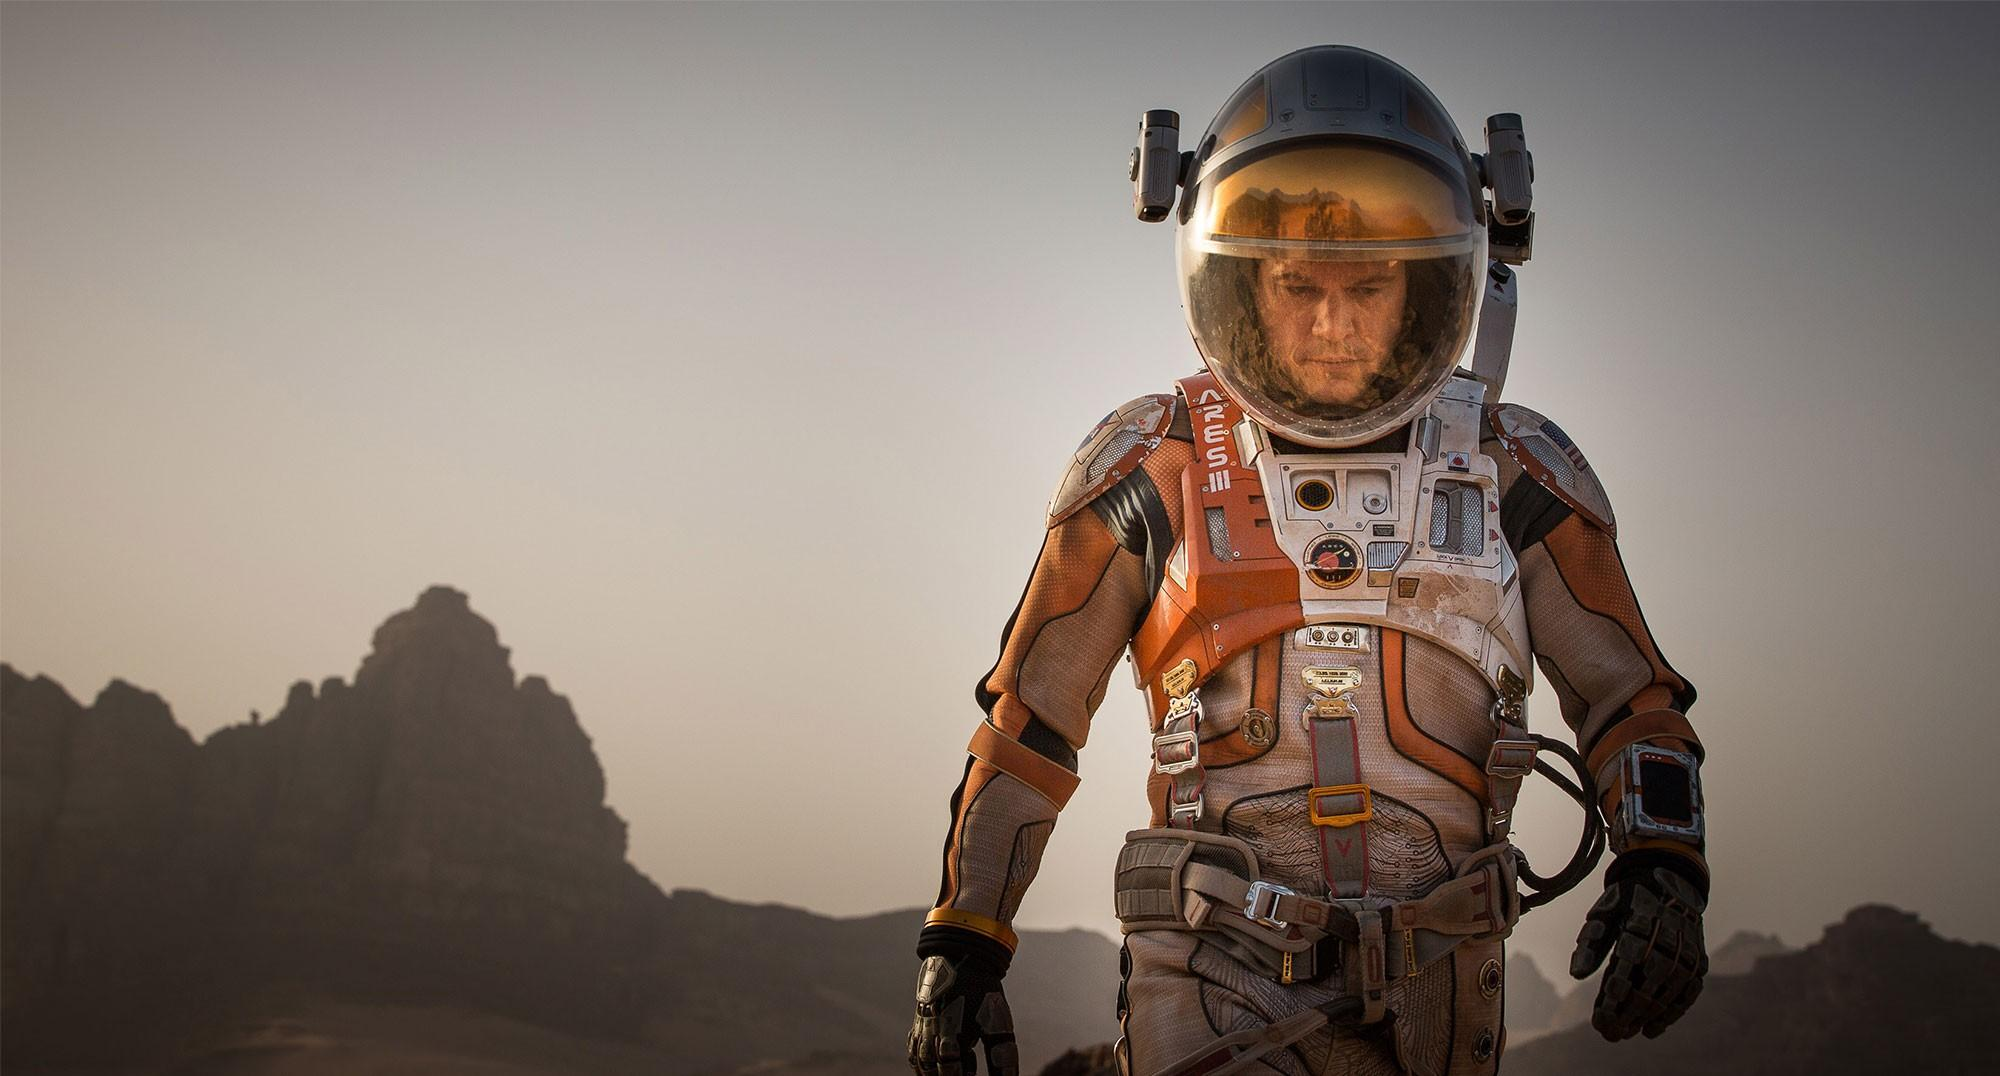 'The Martian' already has a rating of 8.6 on IMDb and 94% of Rotten Tomatoes critics liked it. The film will be released in theaters Oct. 2.